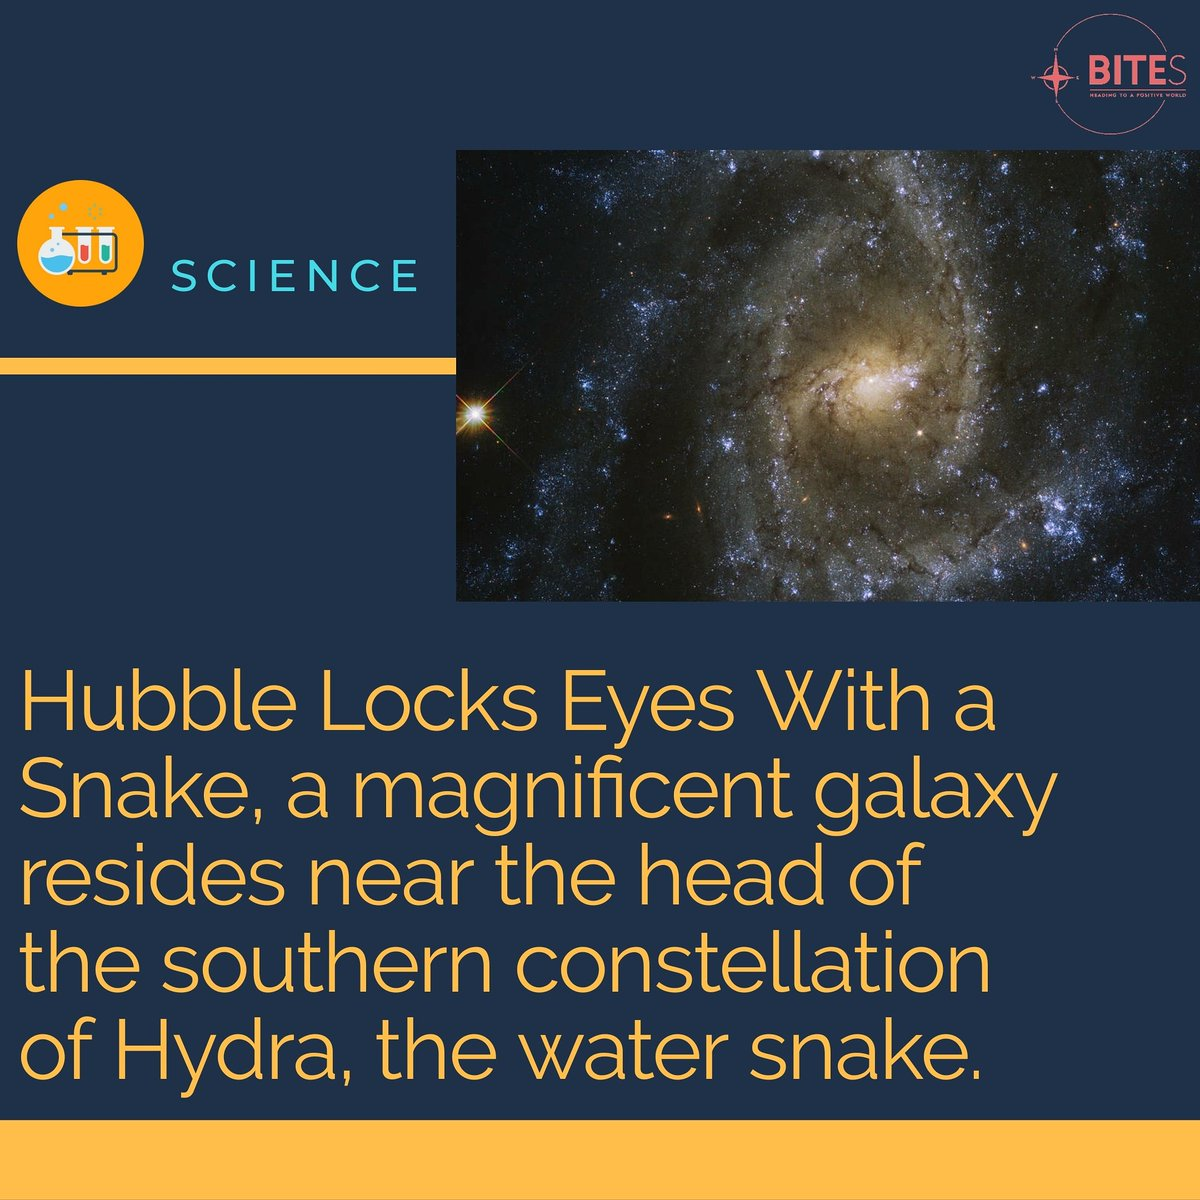 This stunningbarred spiral galaxy, with a width of just over half that of the Milky Way, is brilliantly featured in this image taken by theNASA/ESA Hubble Space Telescope. #nasa #galaxy #discovery #hubble #watersnake  https://t.co/Sv1kkP8Aj9 https://t.co/SorfsUCaaq